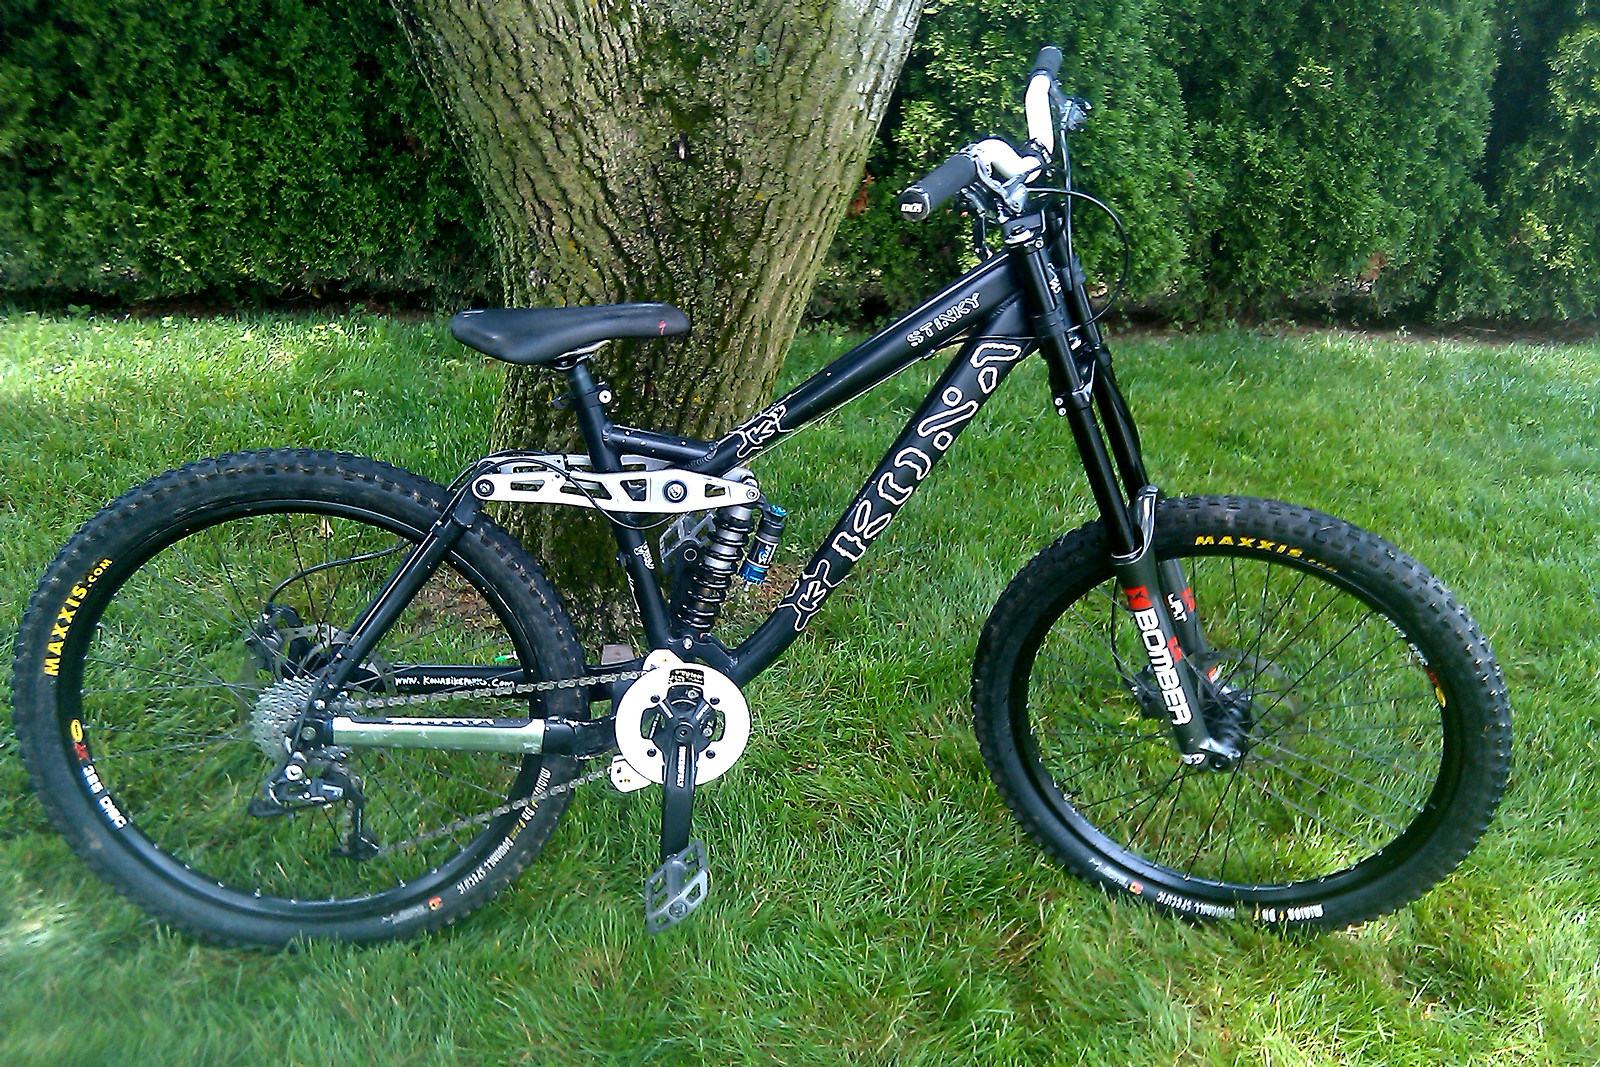 Bought used